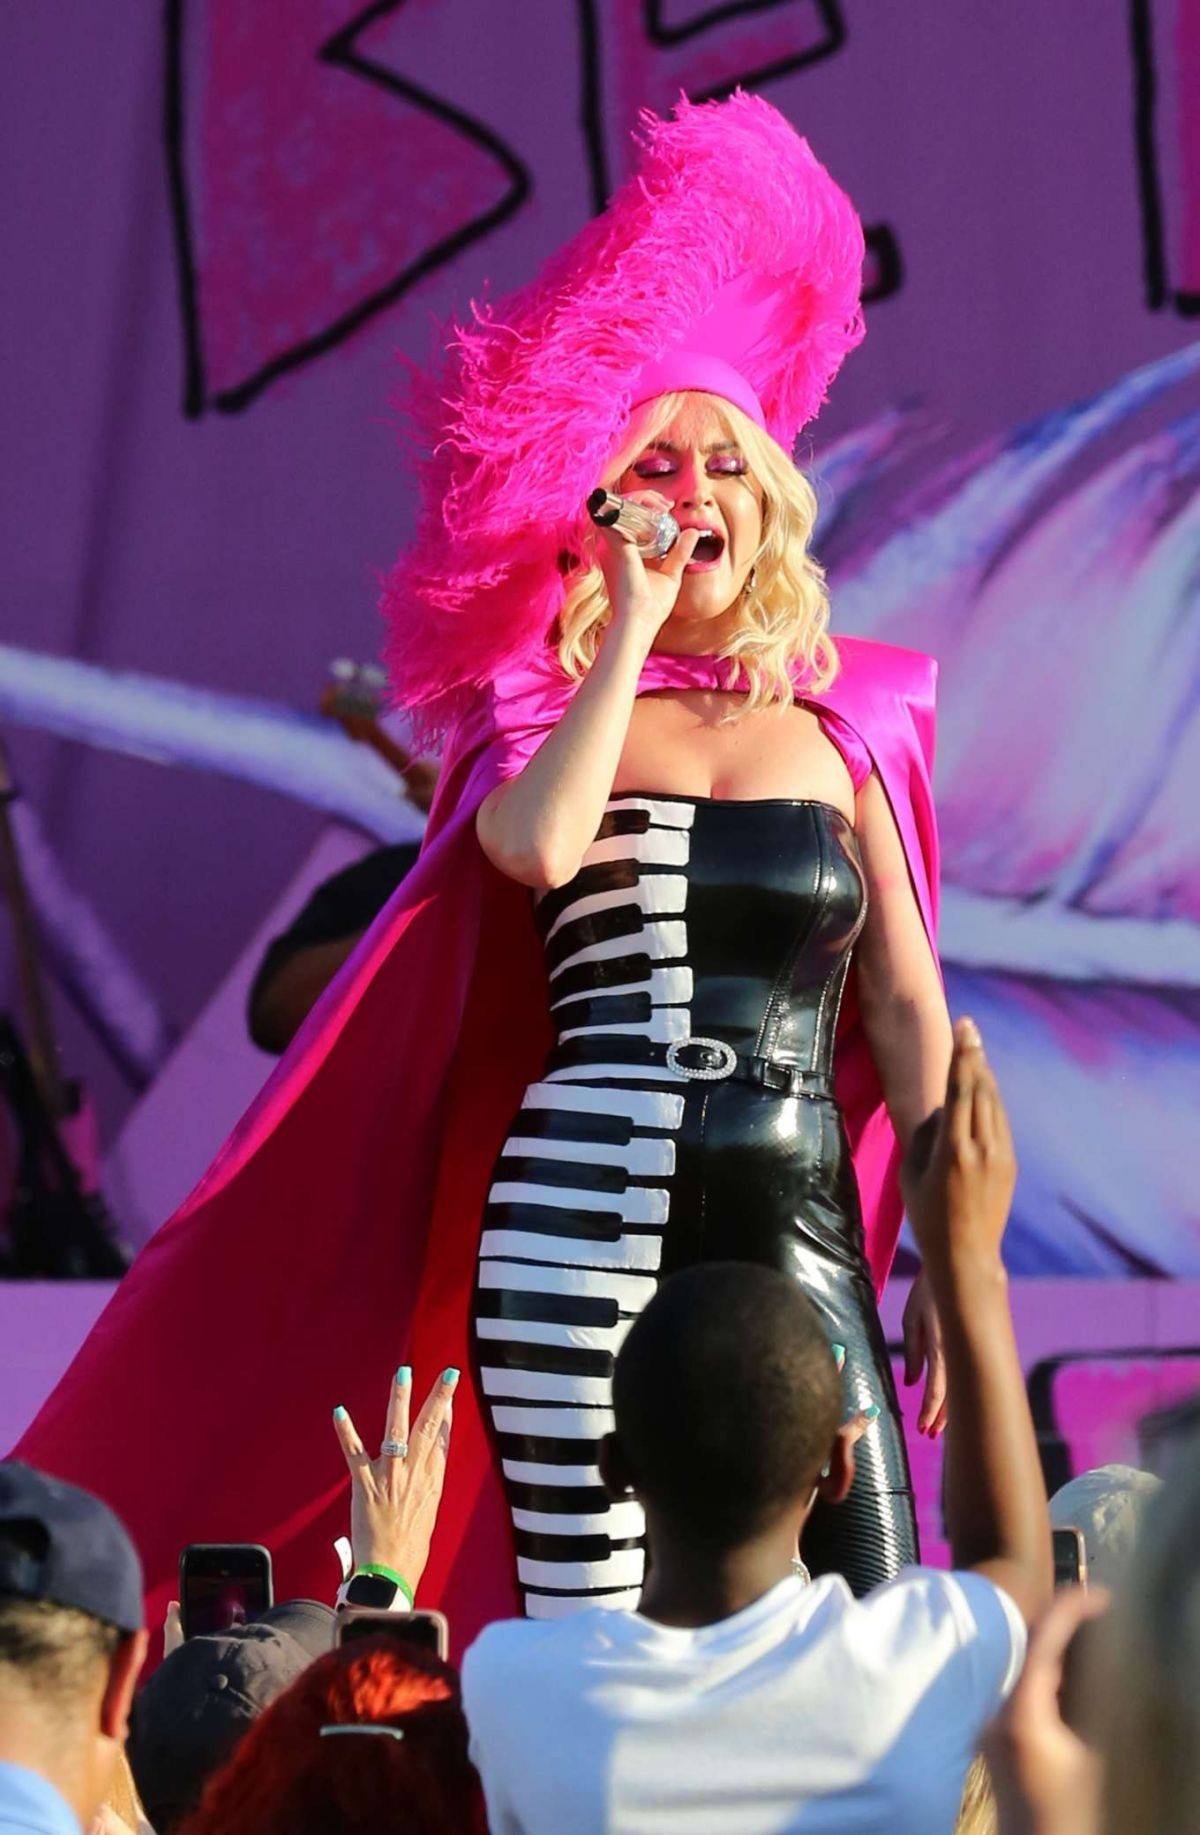 Katy Perry Performs at 2019 New Orleans Jazz & Heritage Festival 50th Anniversary 2019/04/27 1